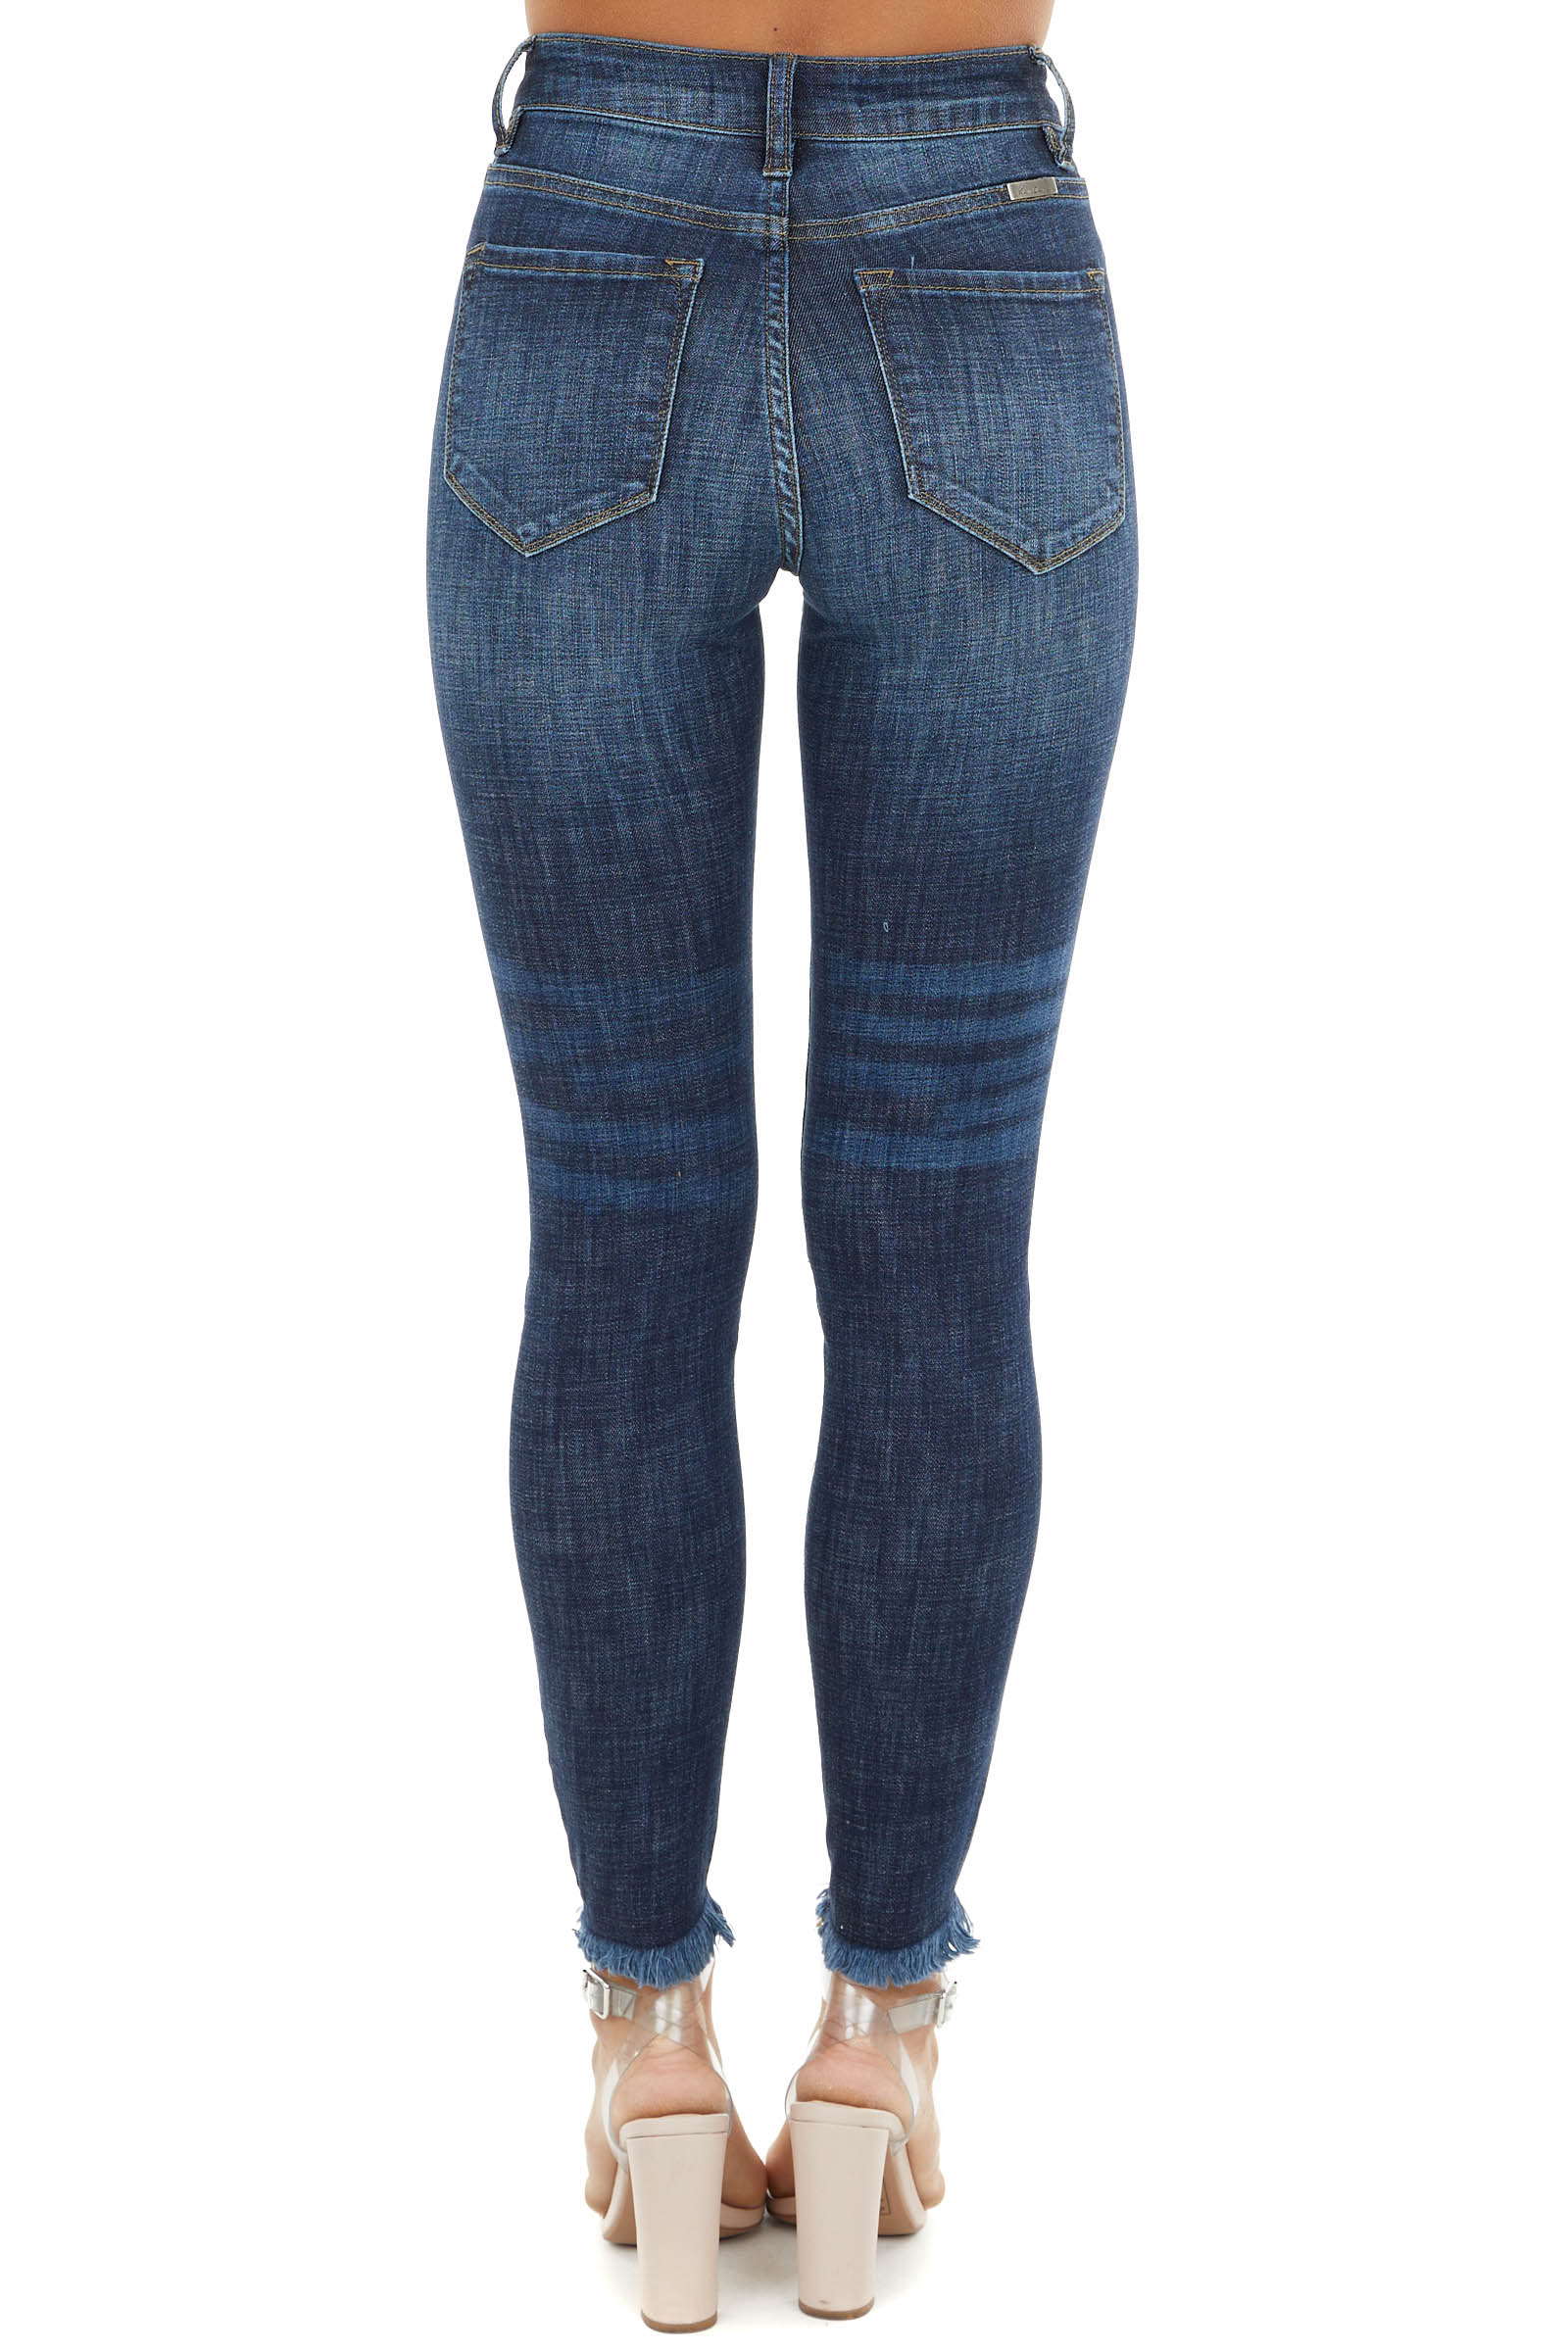 Dark Wash High Rise Skinny Jeans with Distressed Hemline